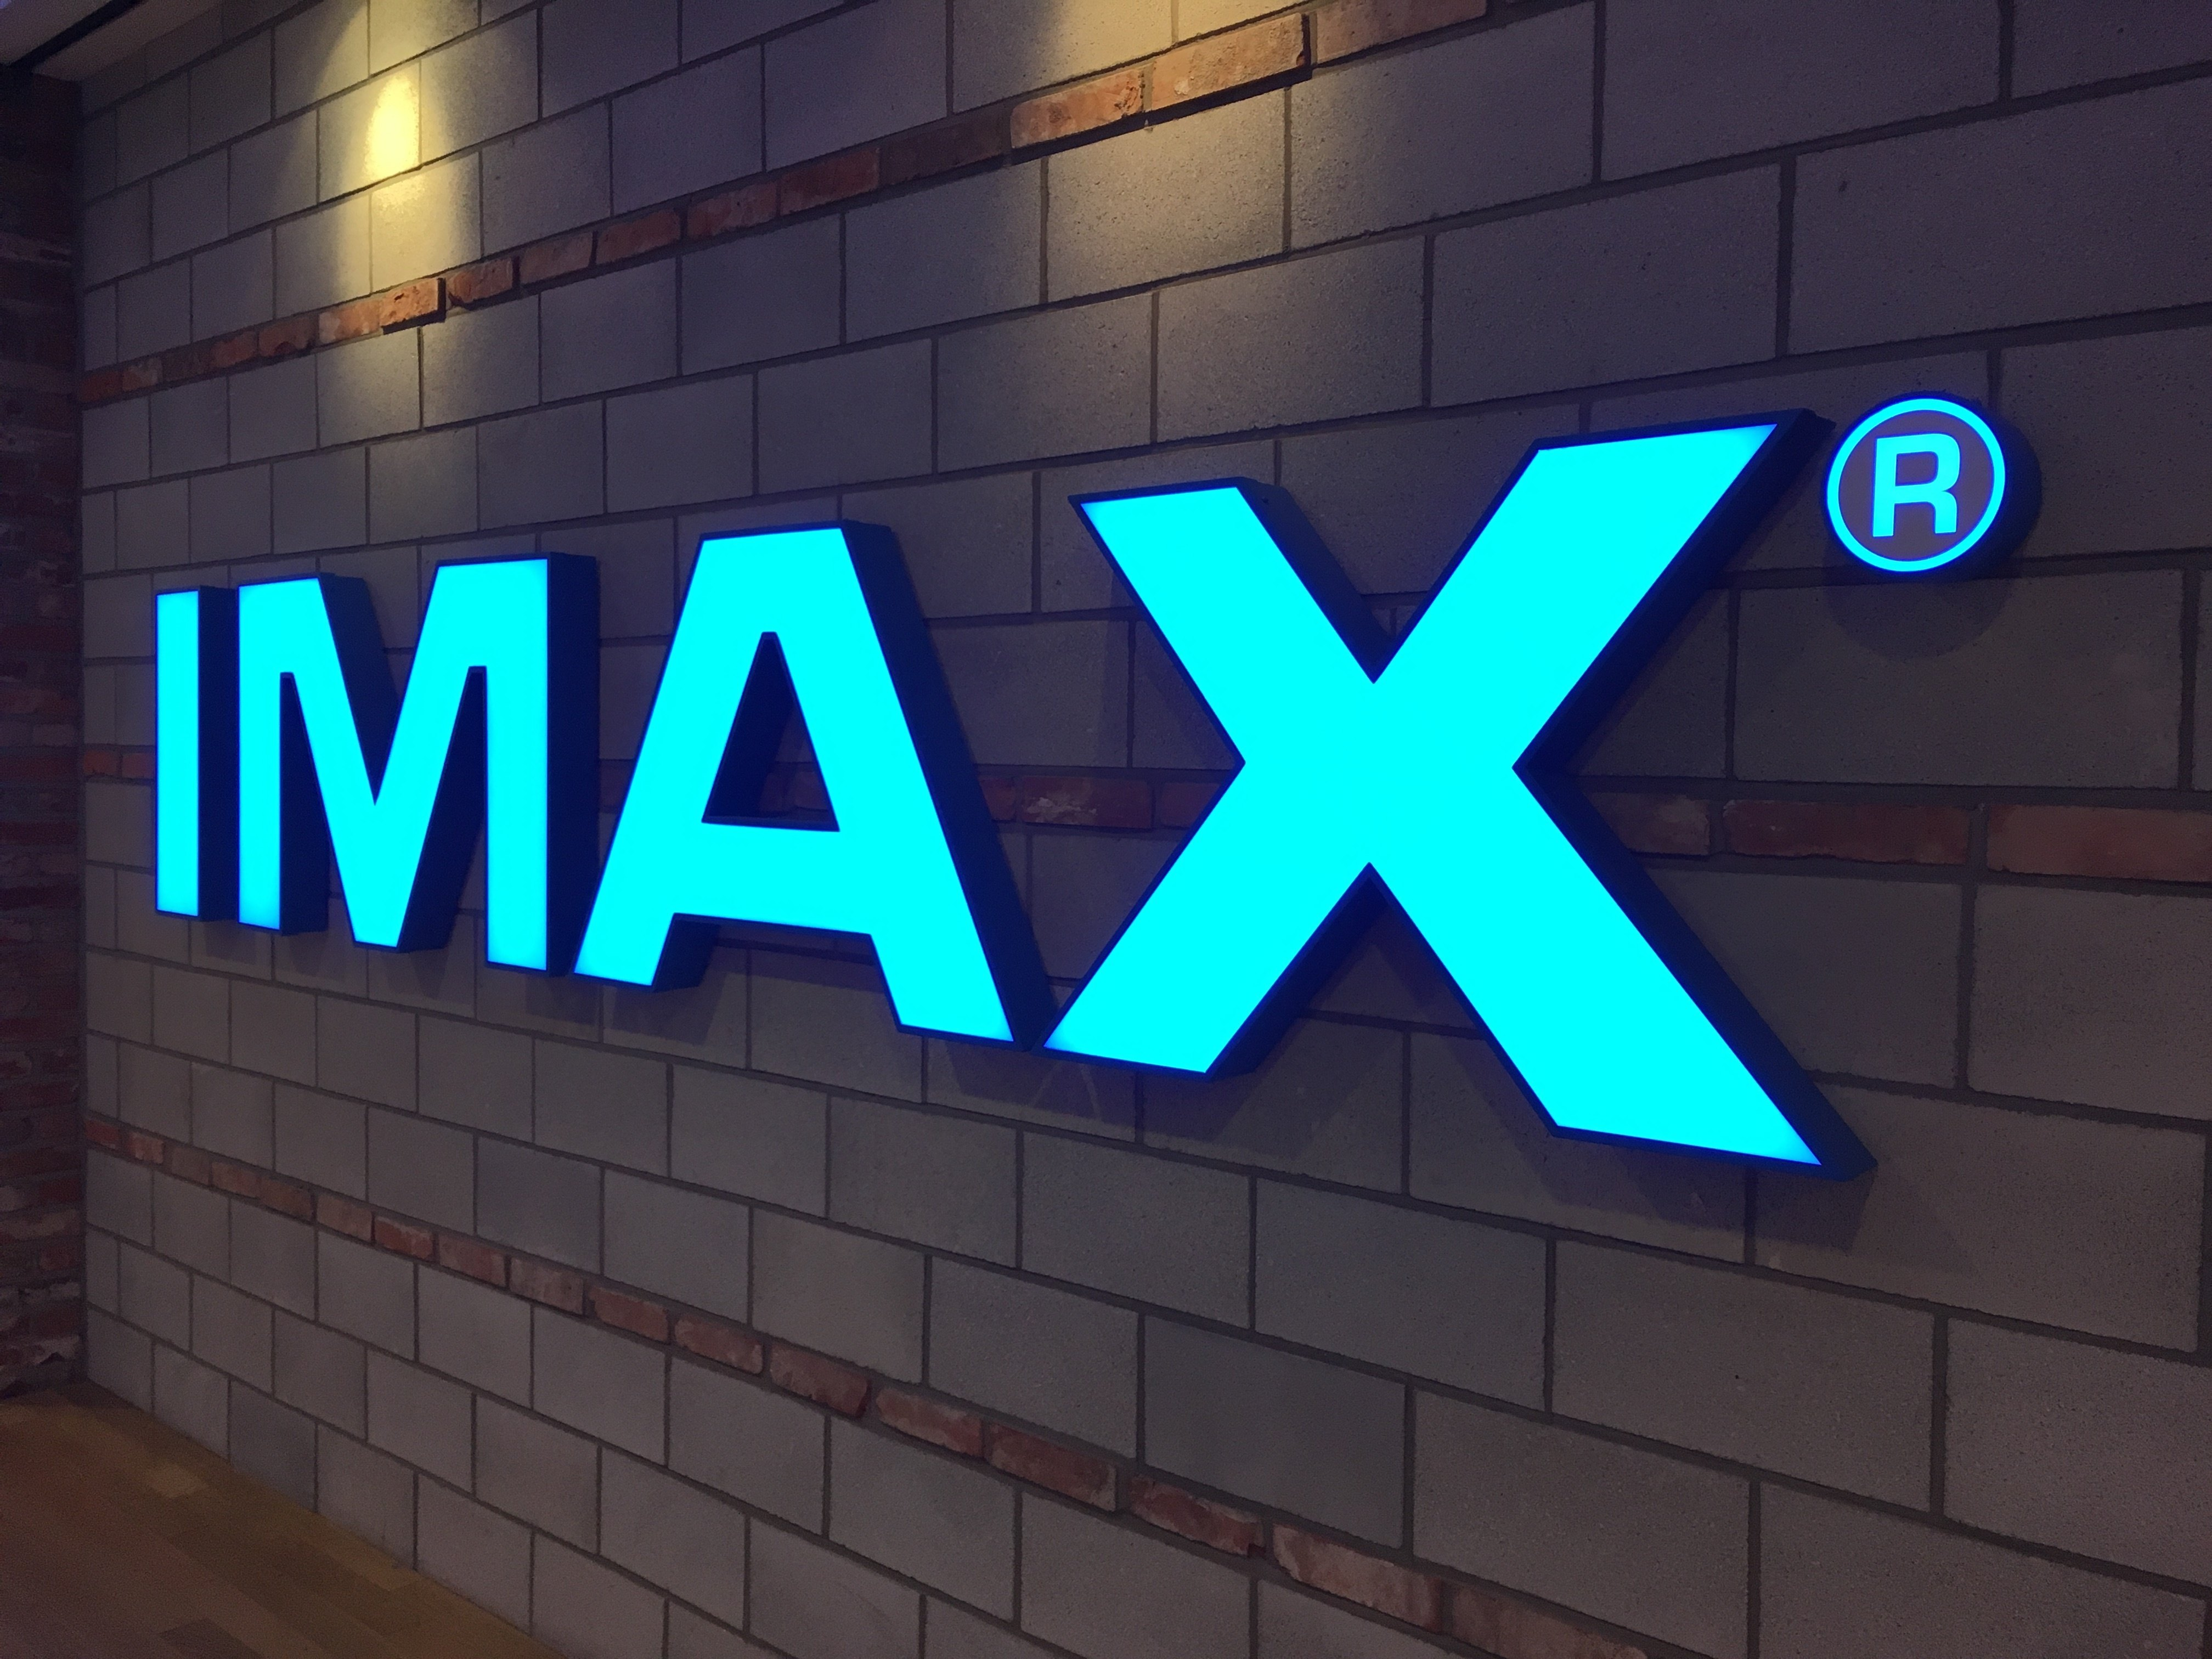 Imax Peaces Out of the VR Industry